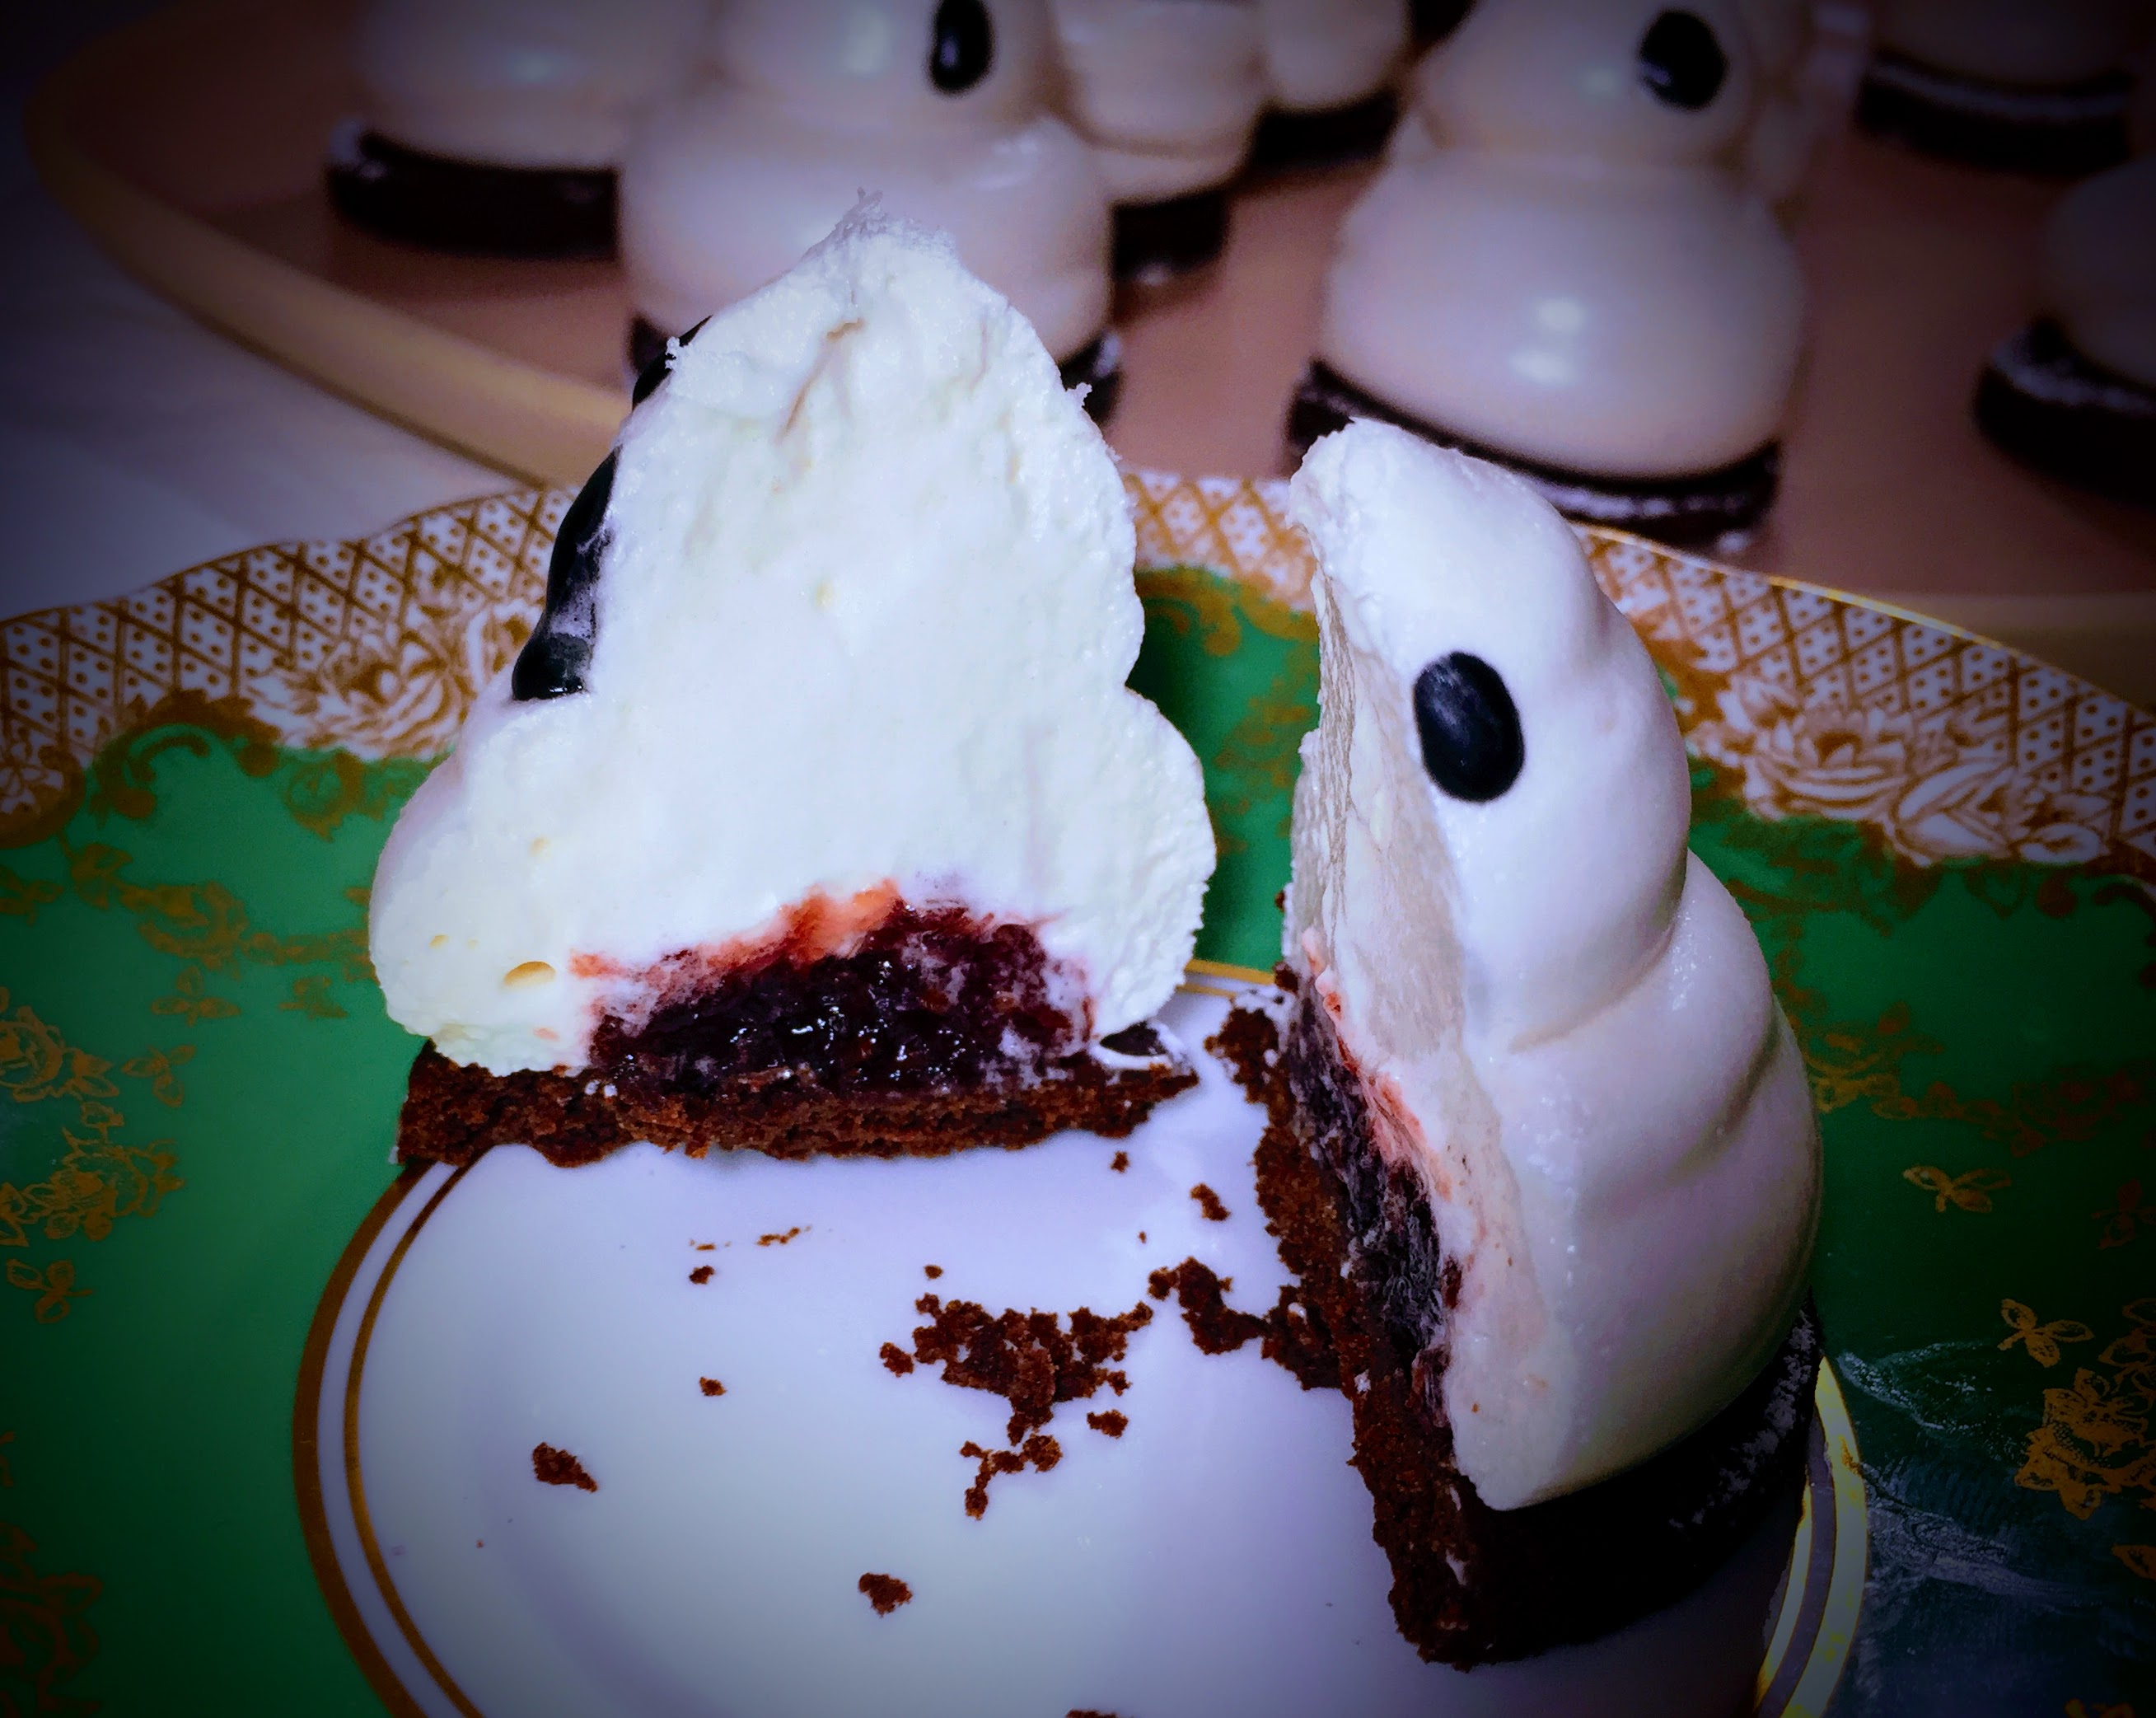 A vegan marshmallow ghost biscuit cut in two. The marshmallow is sliced smoothly to reveal a red jam centre.